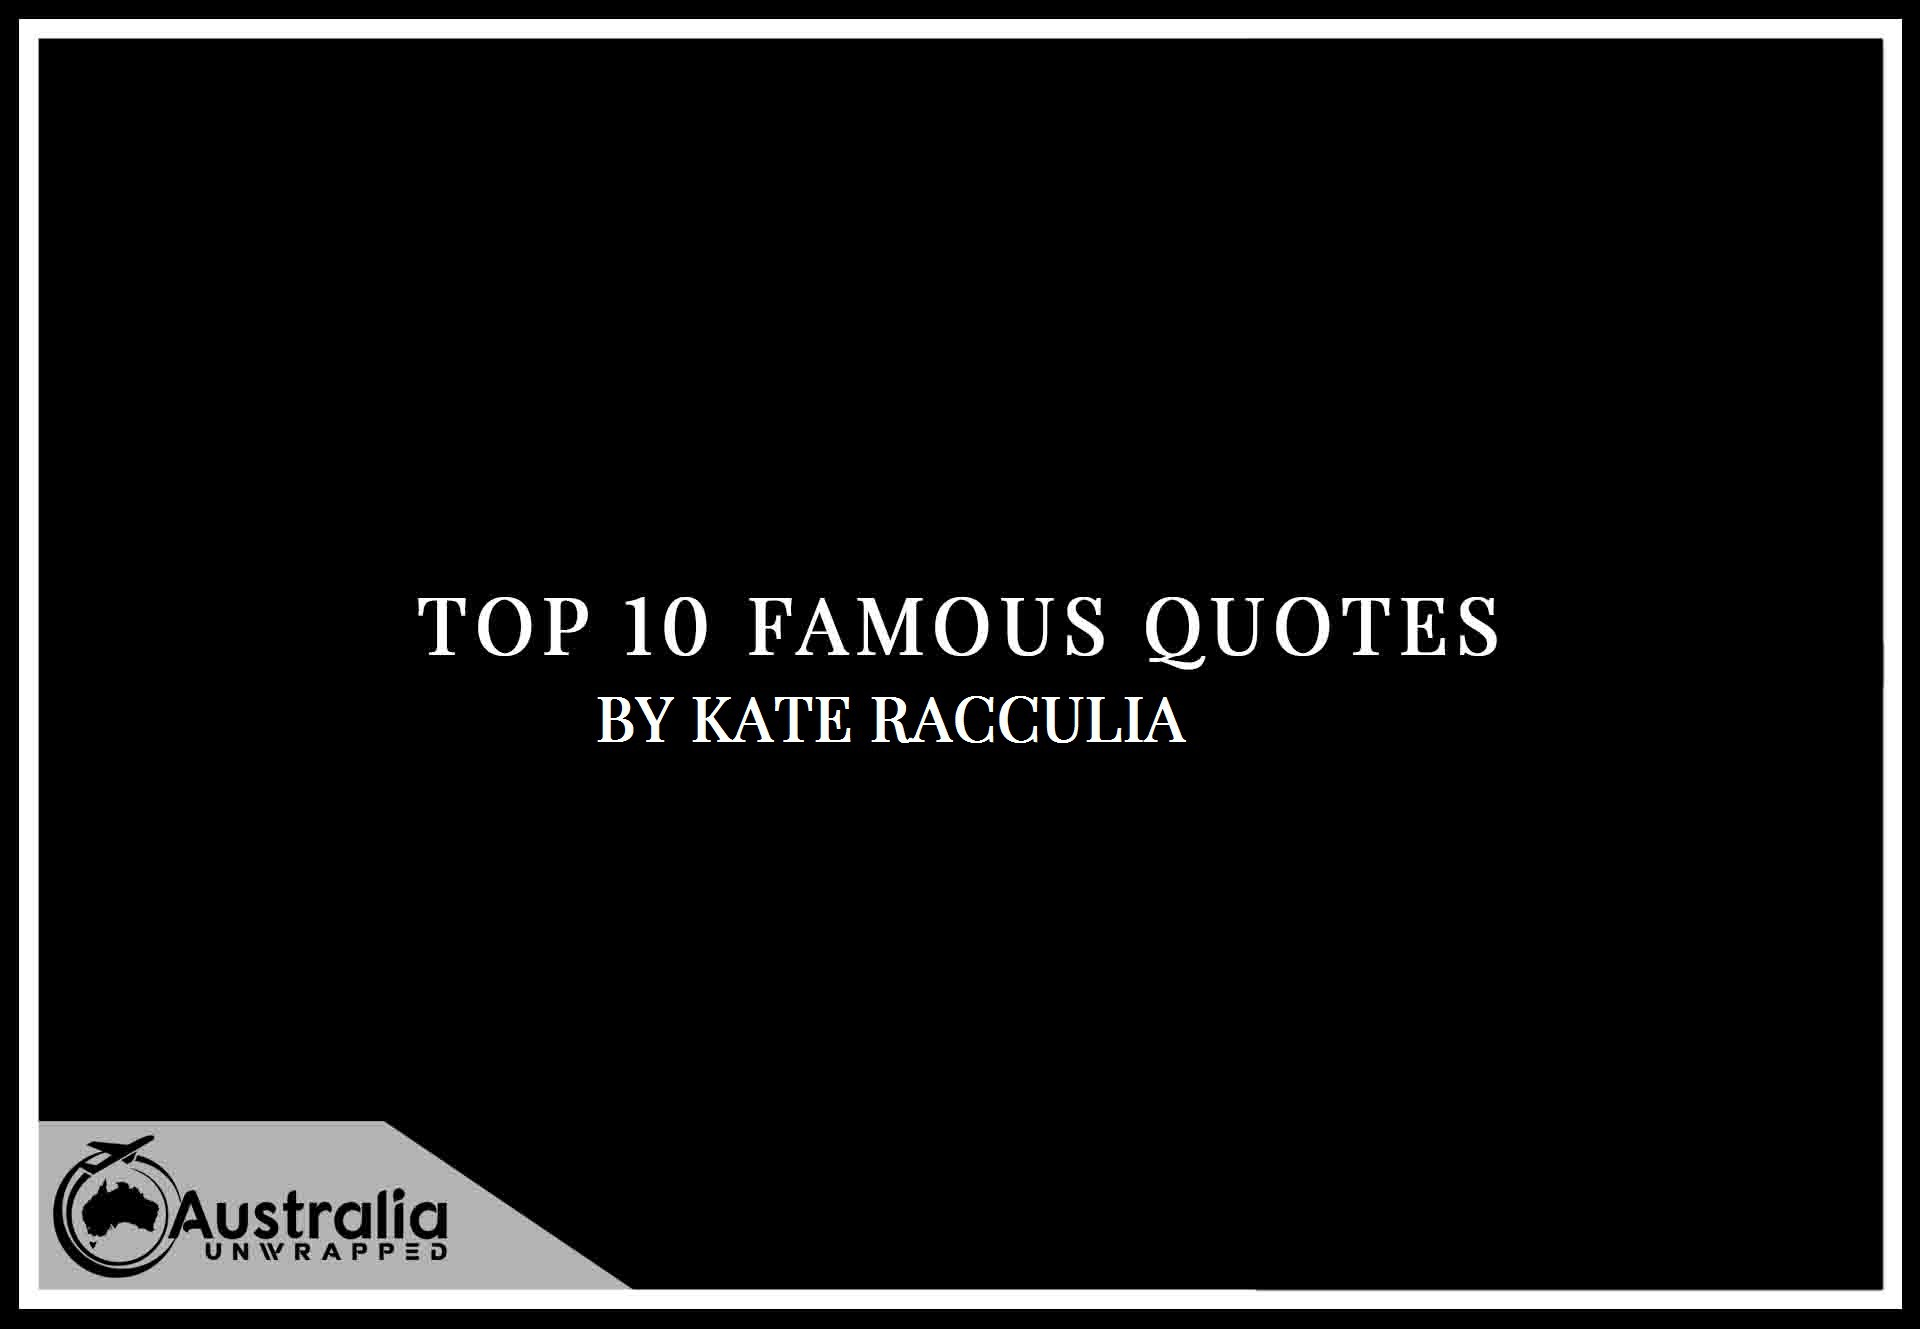 Kate Racculia's Top 10 Popular and Famous Quotes